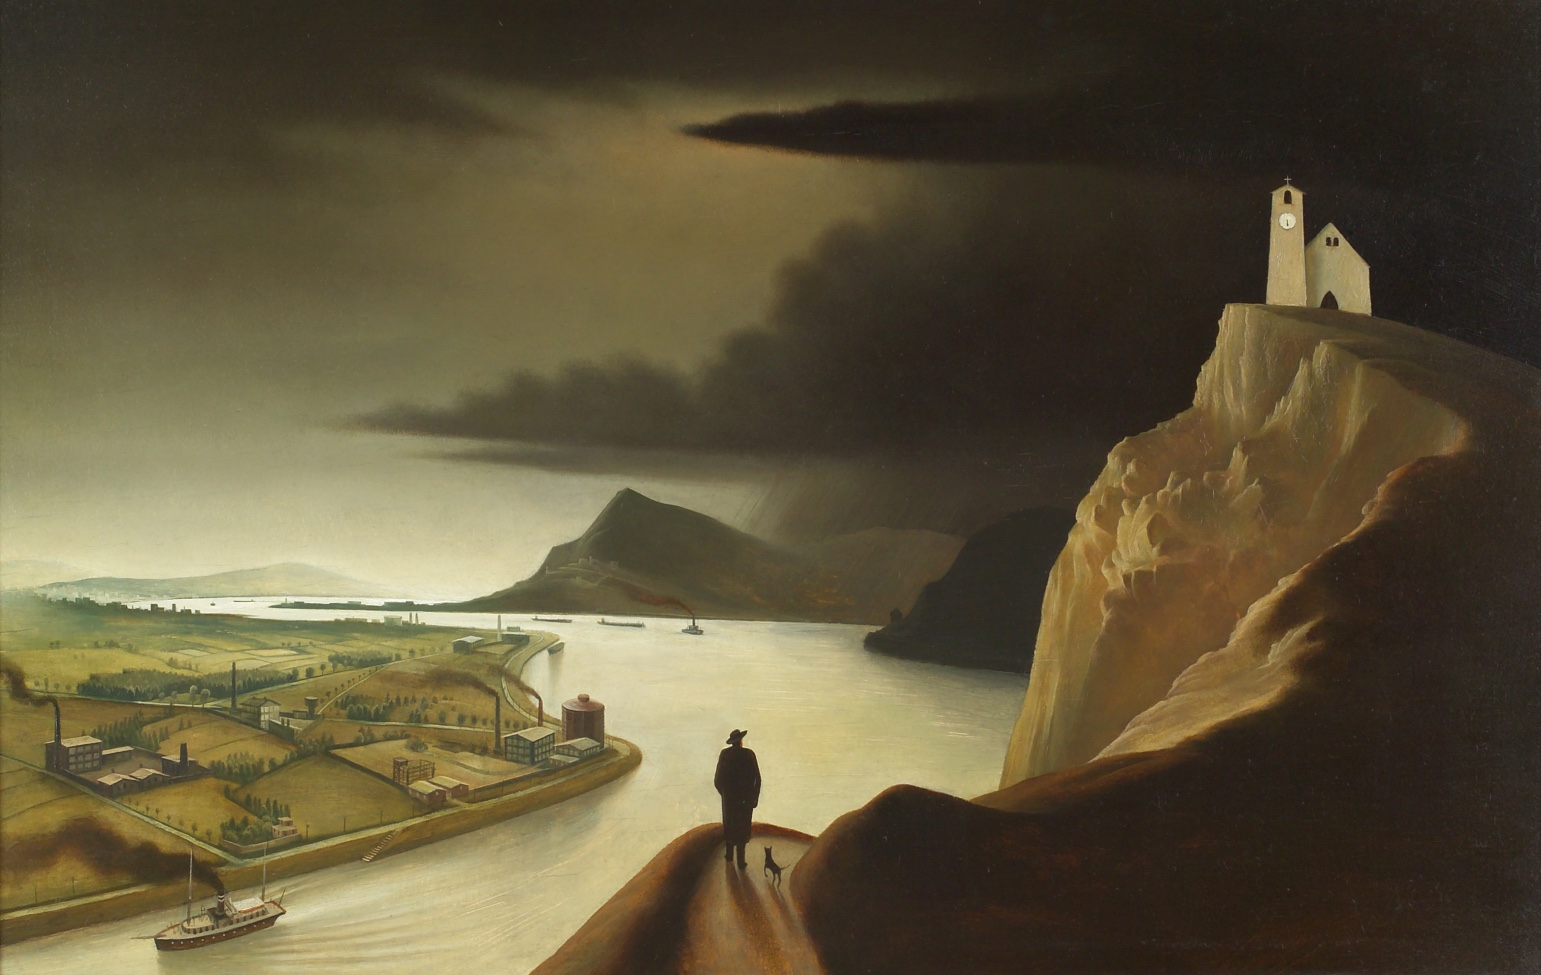 Industrielandschaft, by Franz Sedlacek, 1934